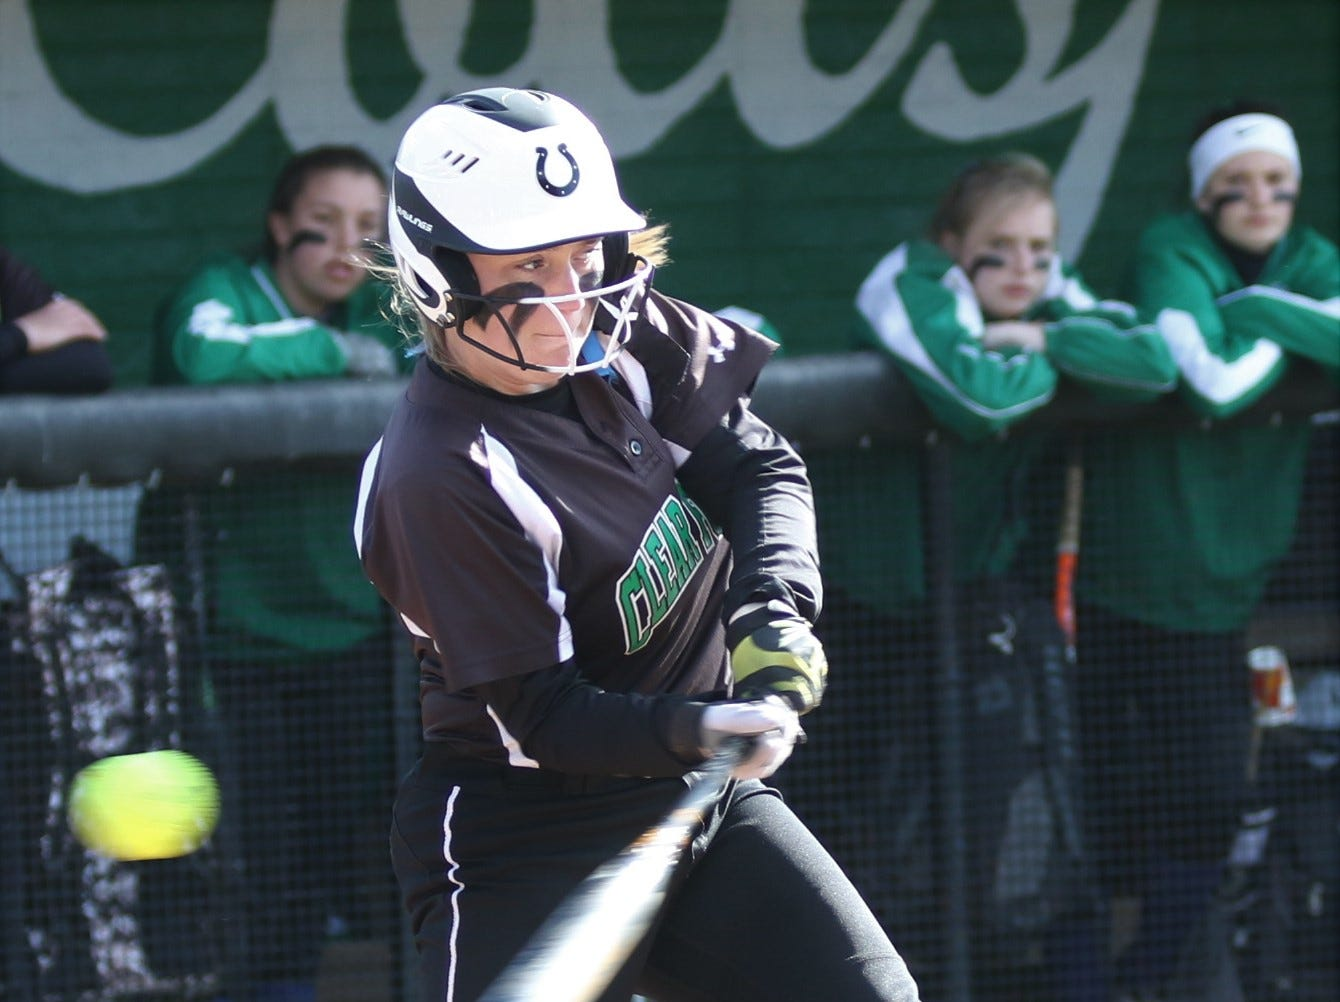 GALLERY: Madison at Clear Fork Softball